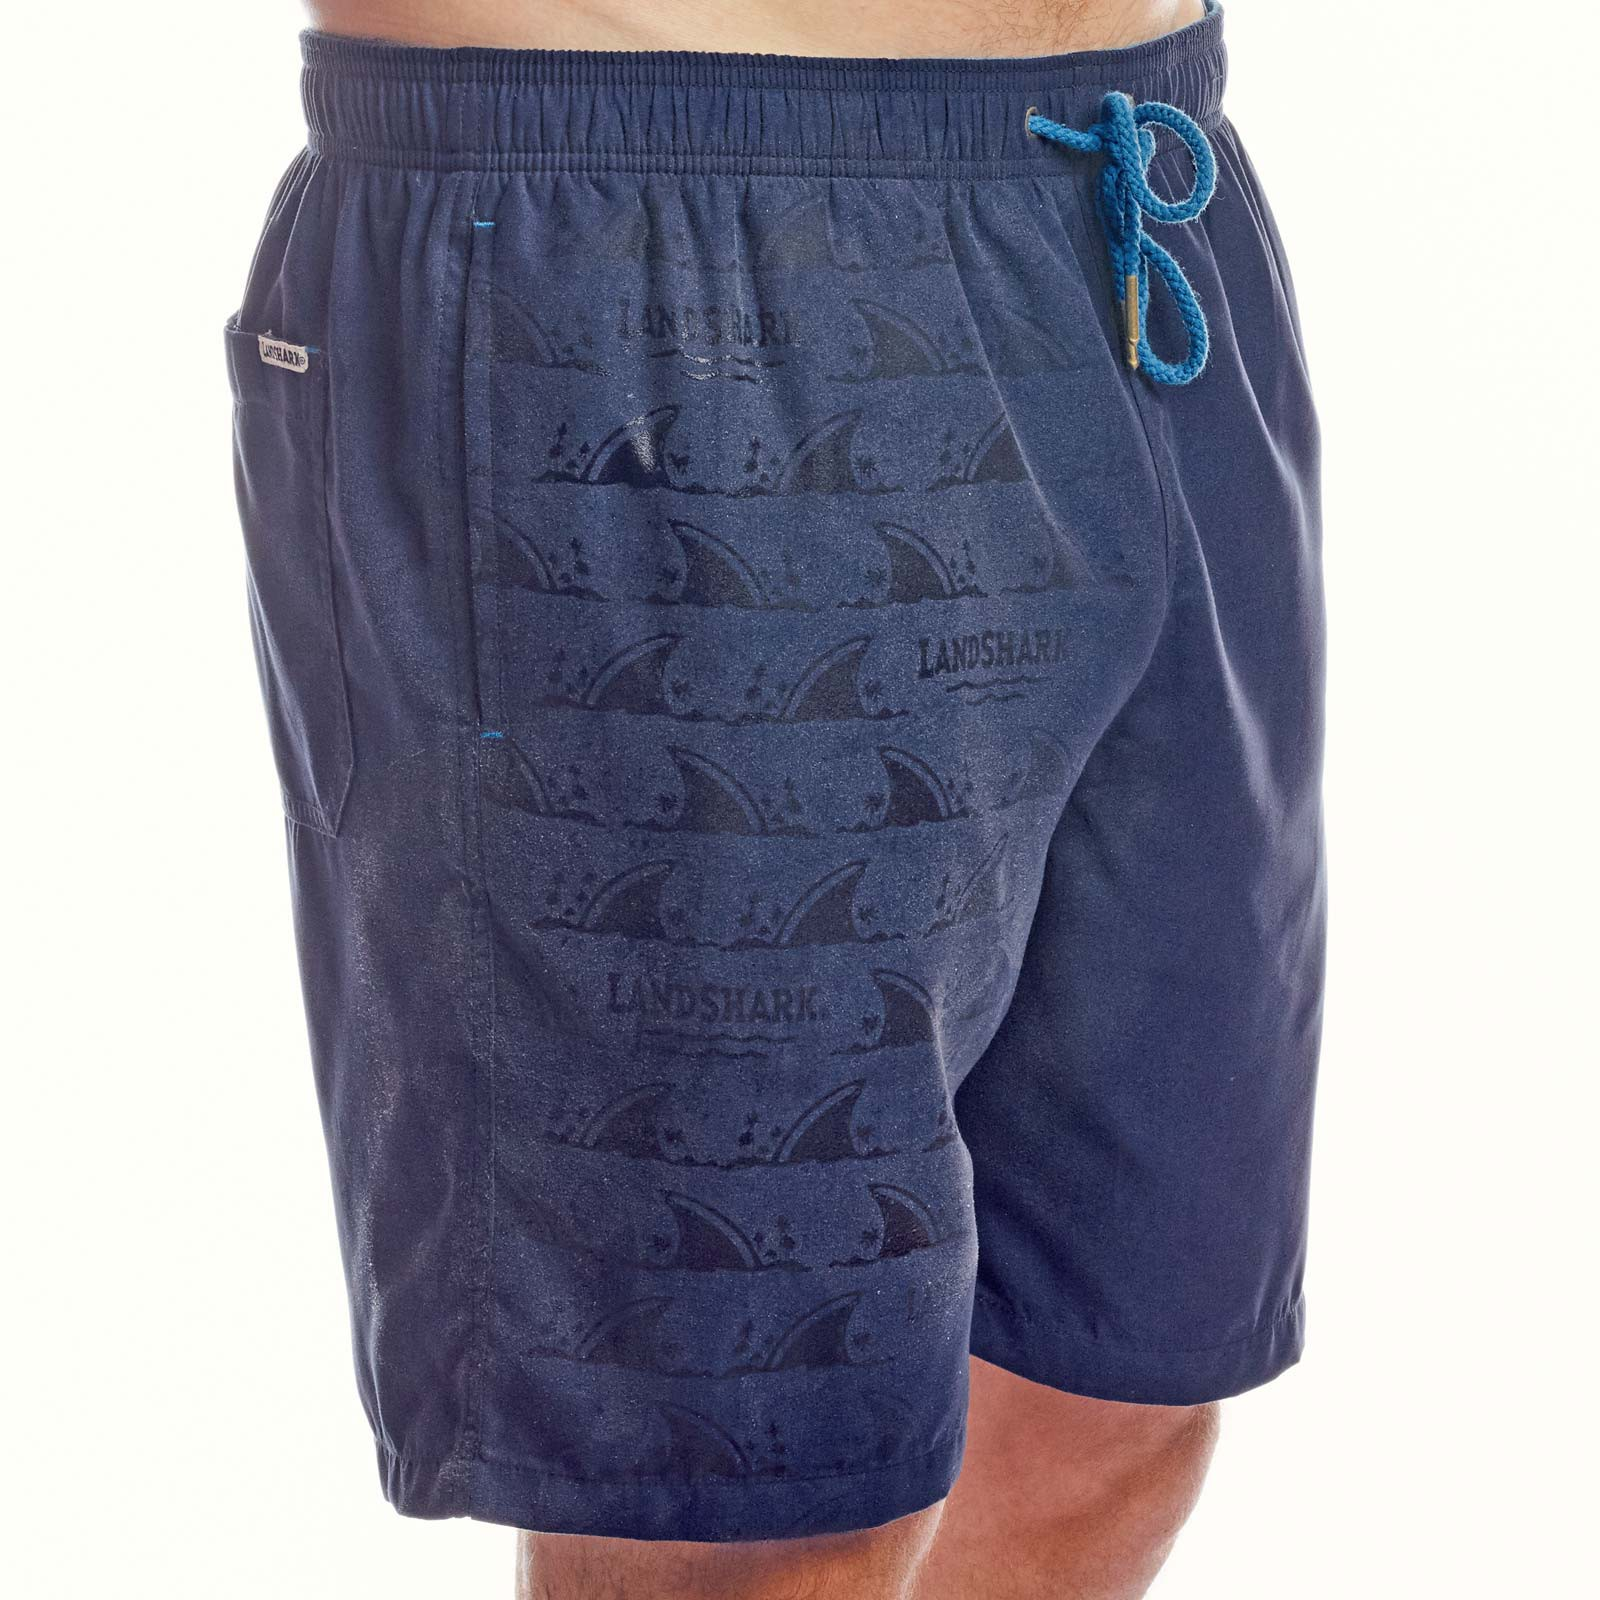 Landshark Ghost Print Color Changing Blue Men's Boardshorts